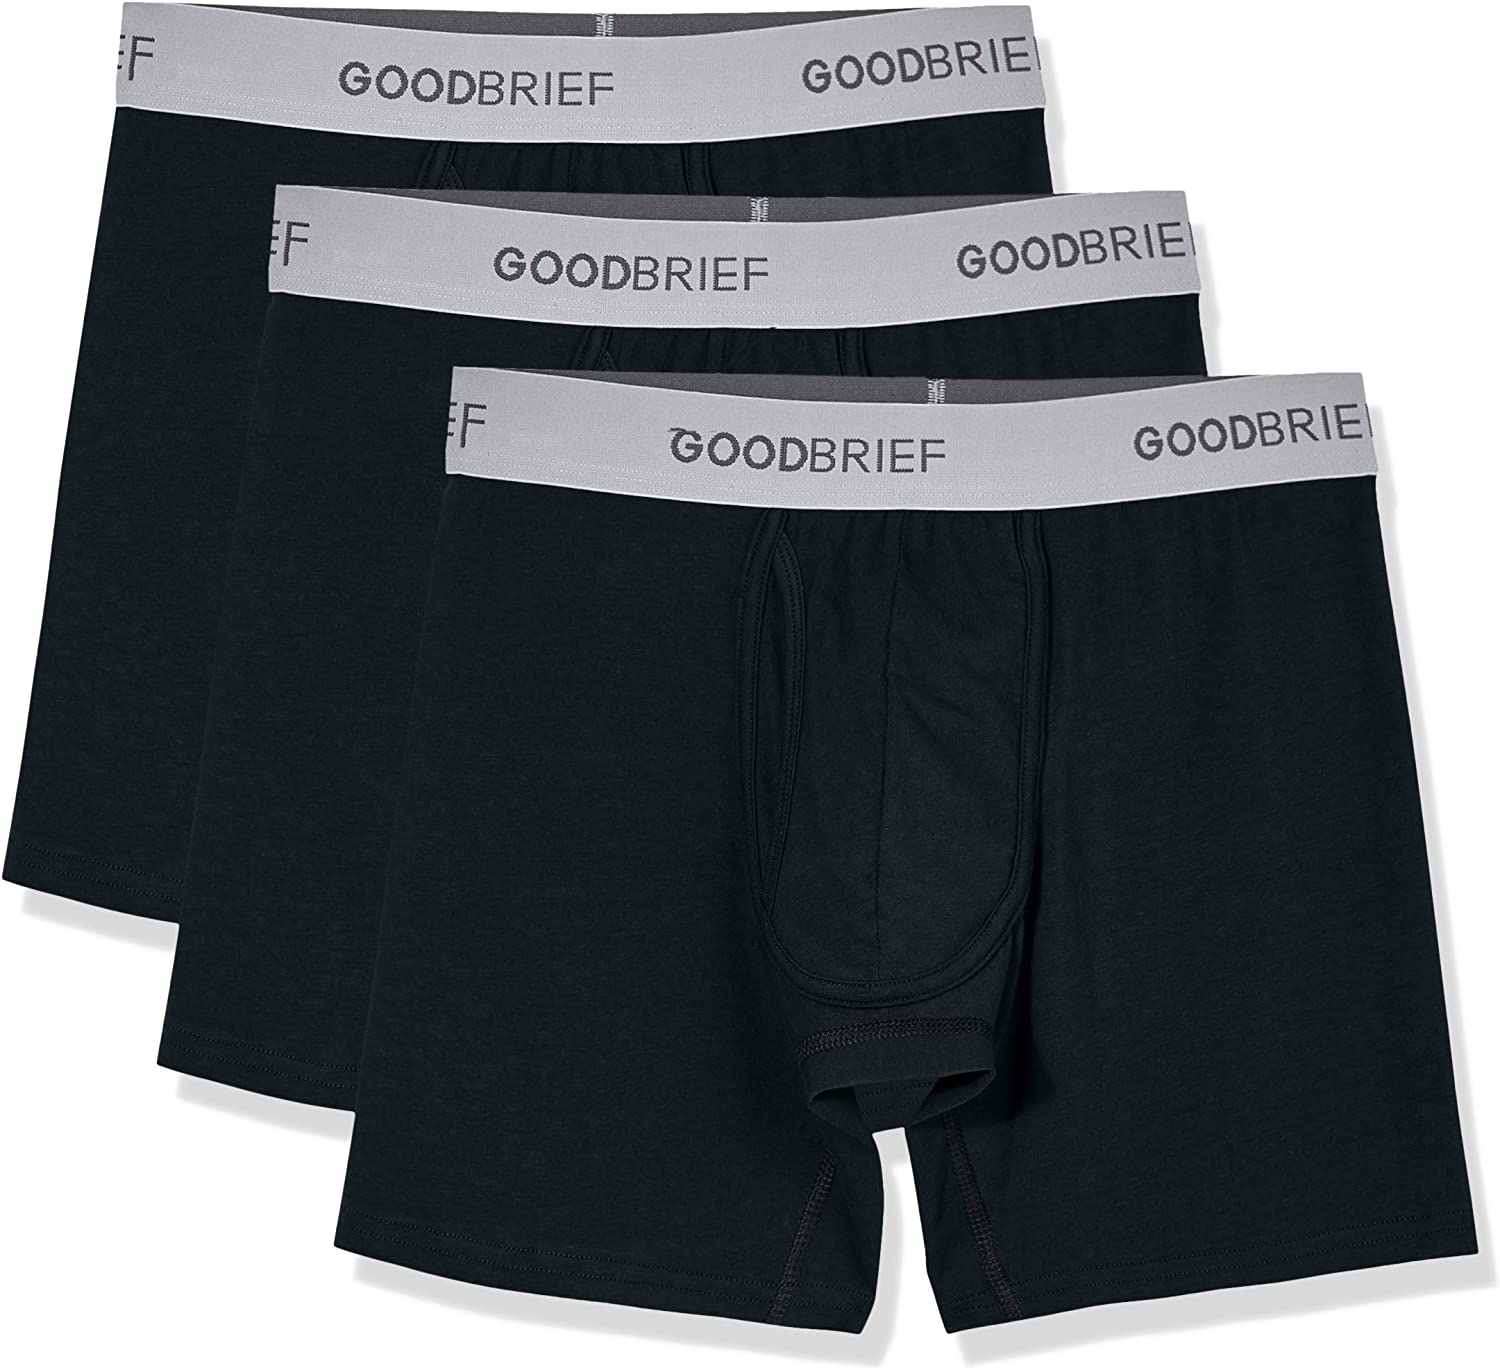 3-Pack//4-Pack//5-Pack Good Brief Mens Cotton Stretch Classic Fit Boxer Briefs